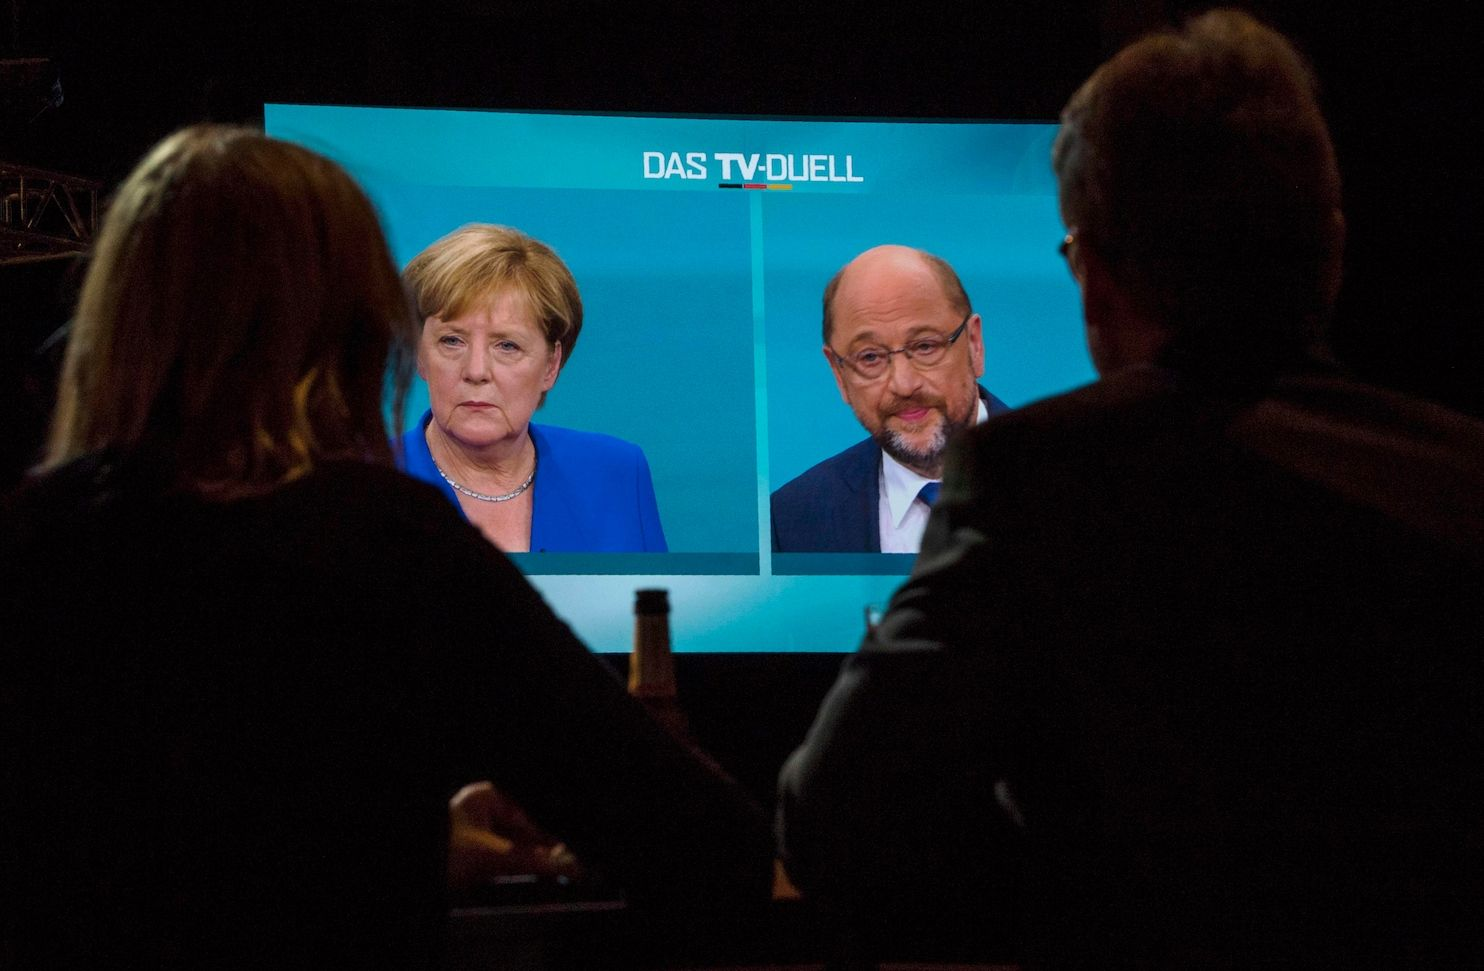 Germans elect a new government but miss a debate over their future - Washington Post